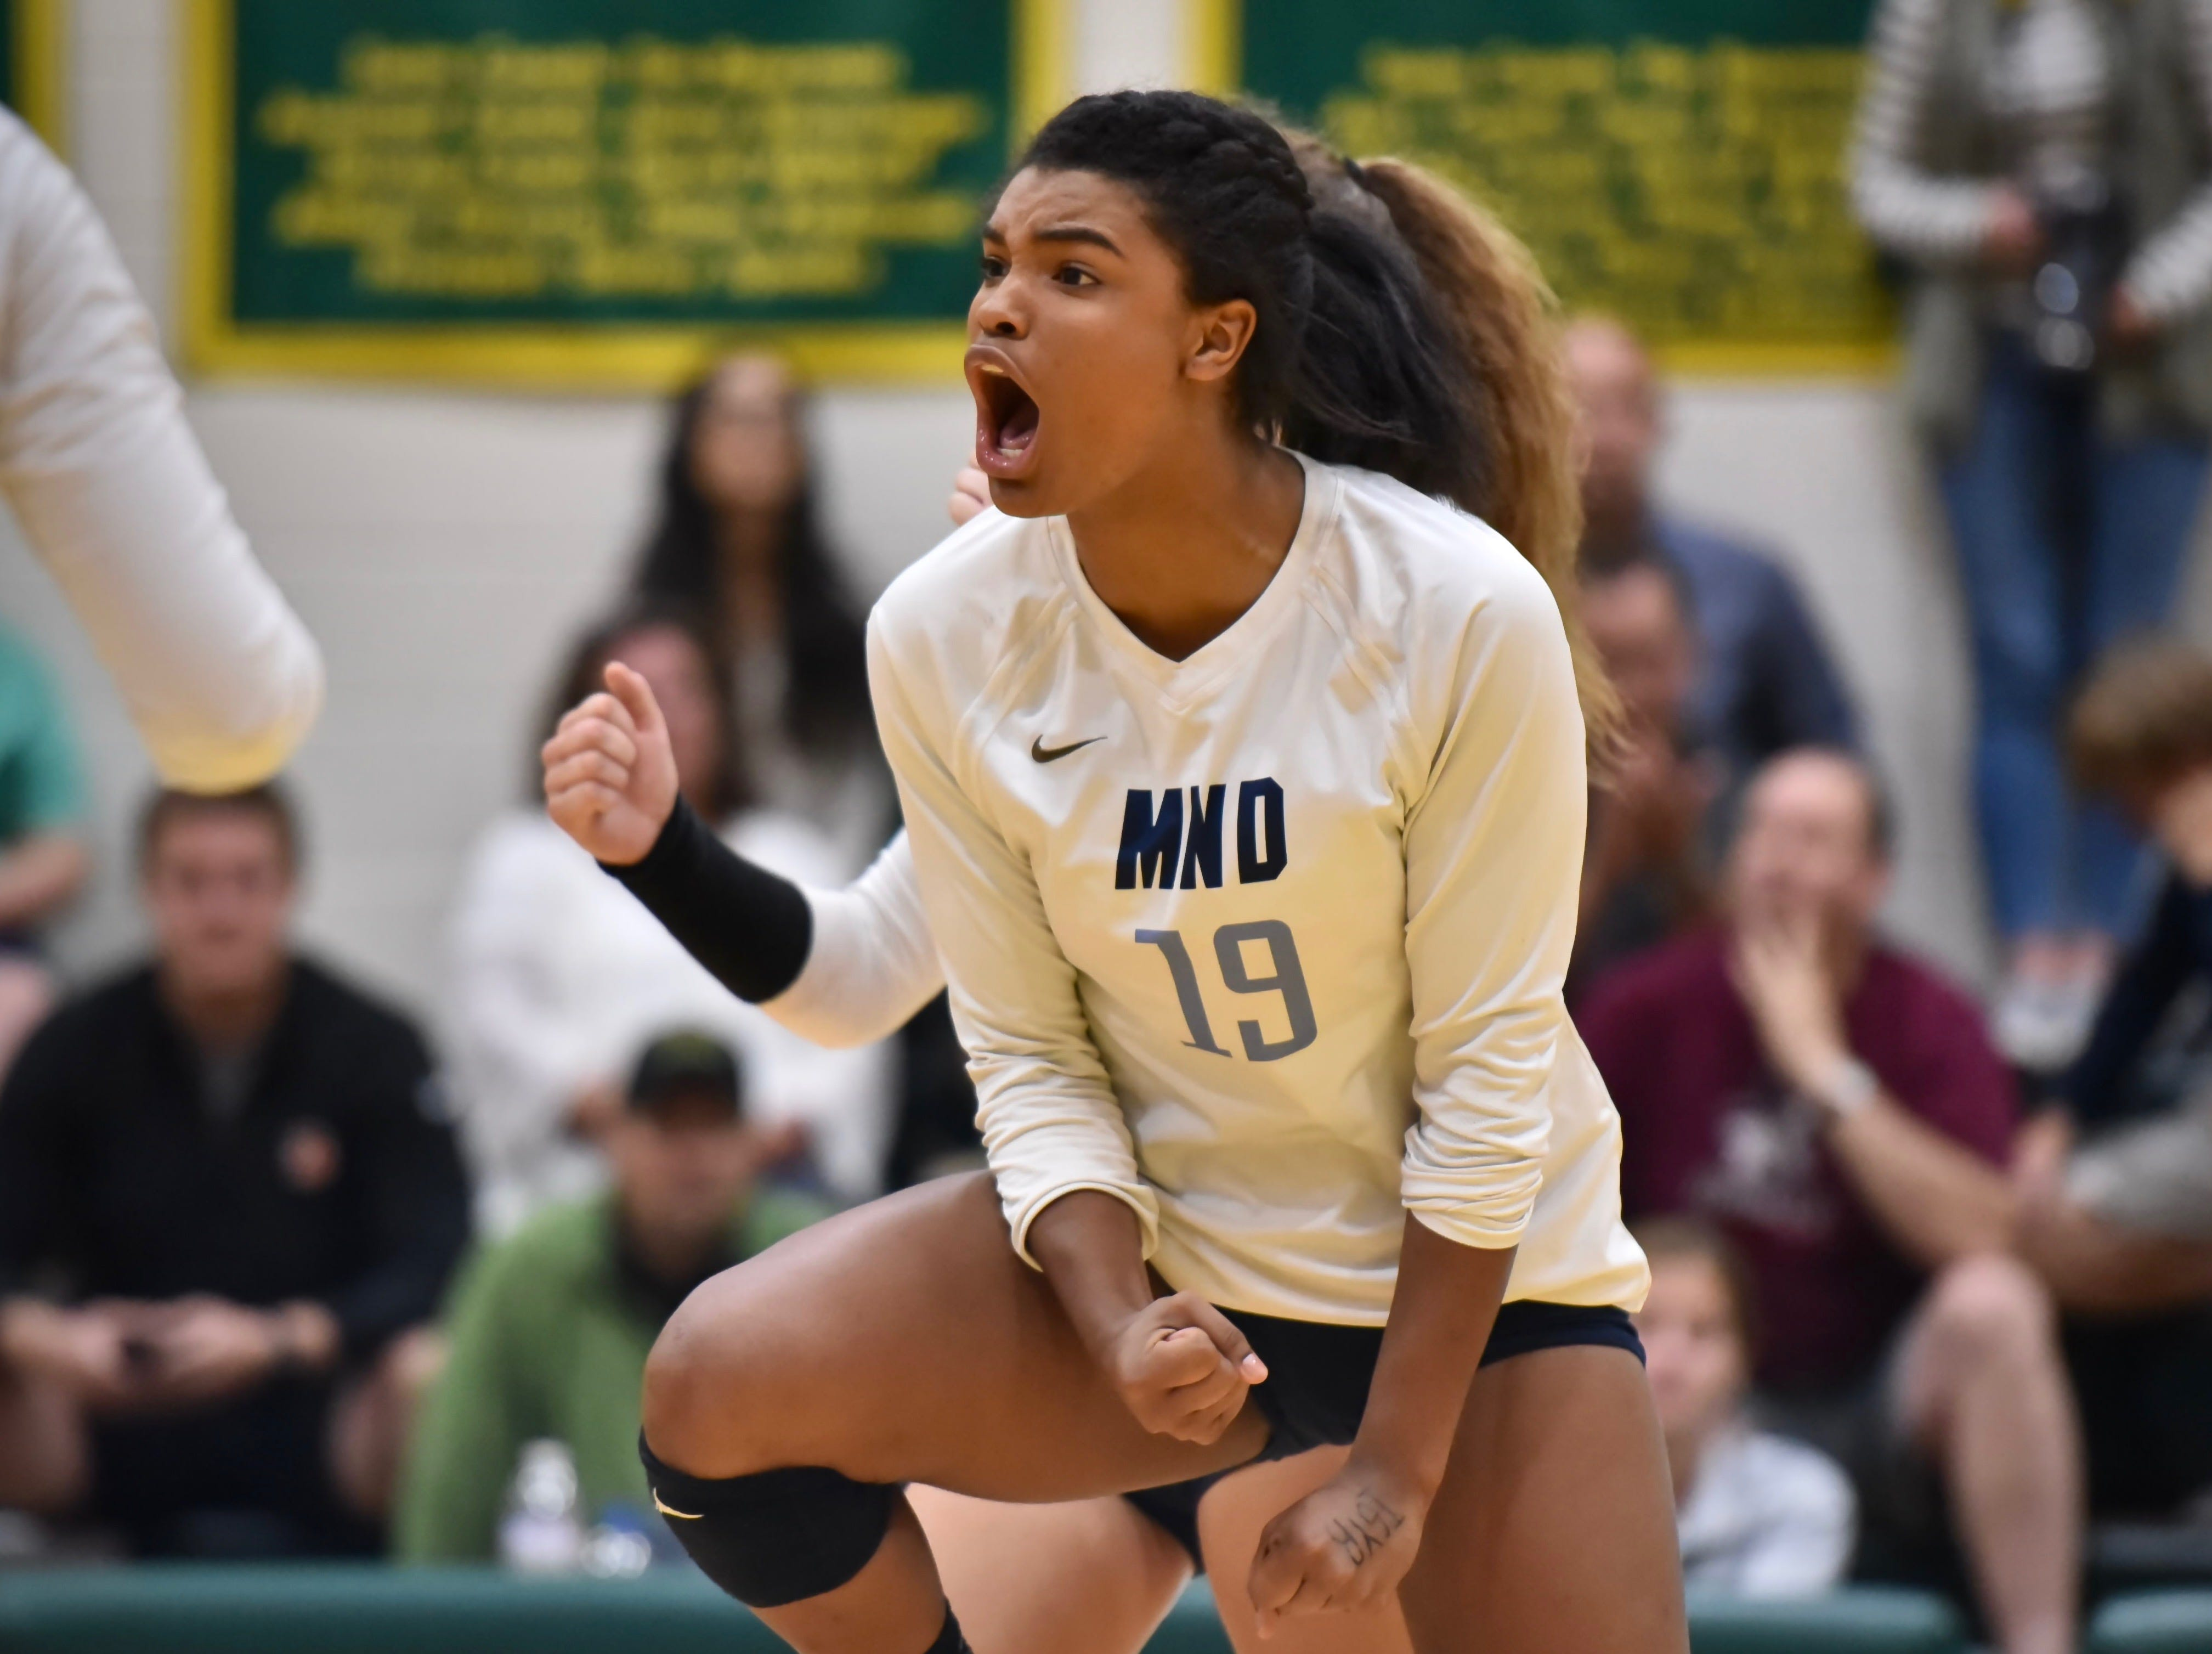 Mount Notre Dame's Ramei Jackson celebrates after spiking the ball for a point late in the fourth set against Ursuline Tuesday, Sept. 11, 2018 at Ursuline Academy